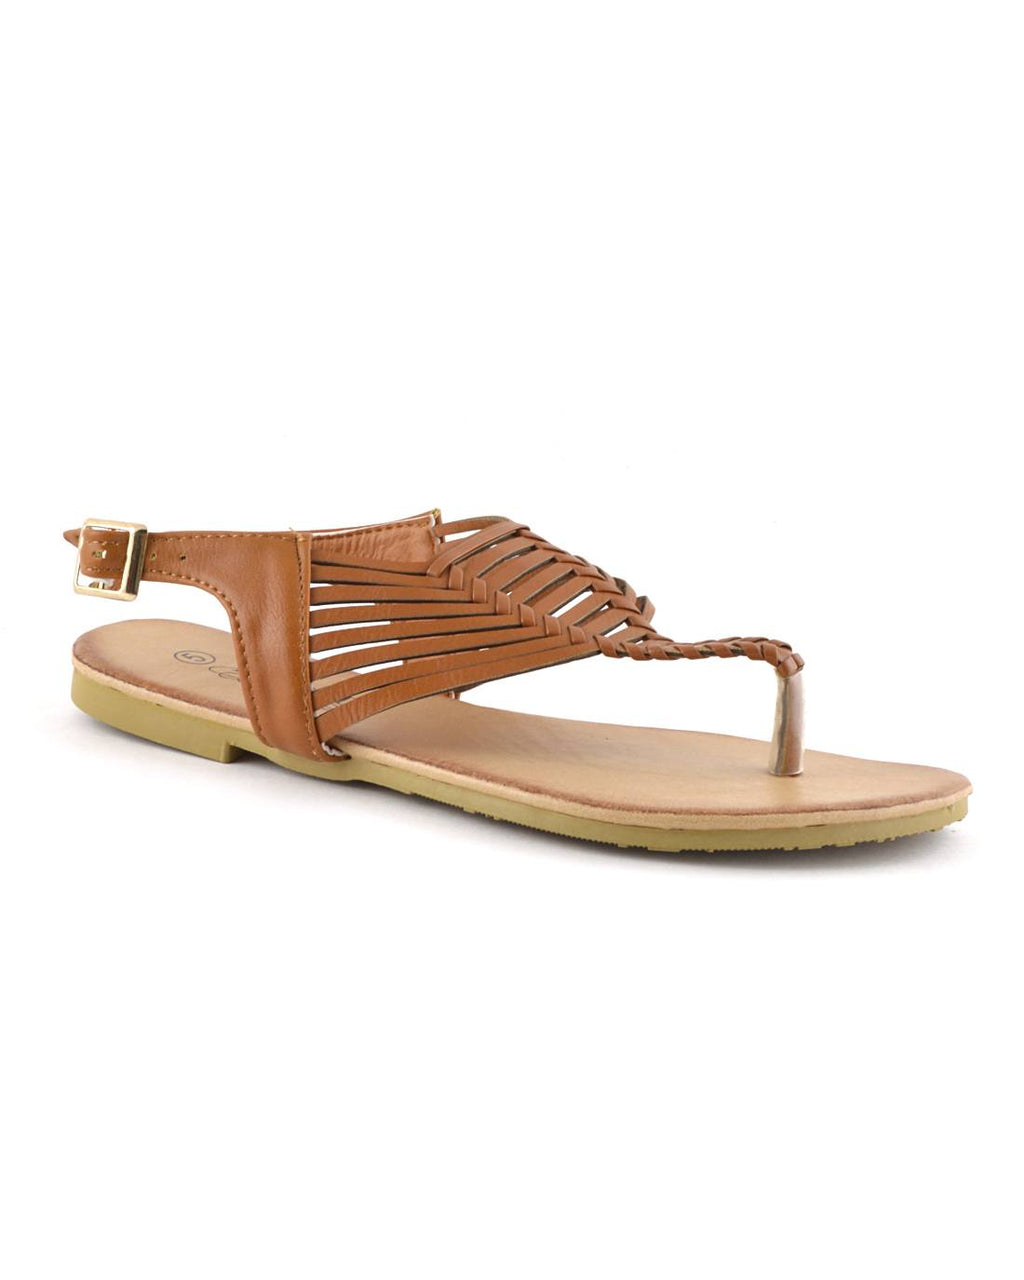 Chic open-toe thong sandal features basket-weave design - Happy-Go-Cart